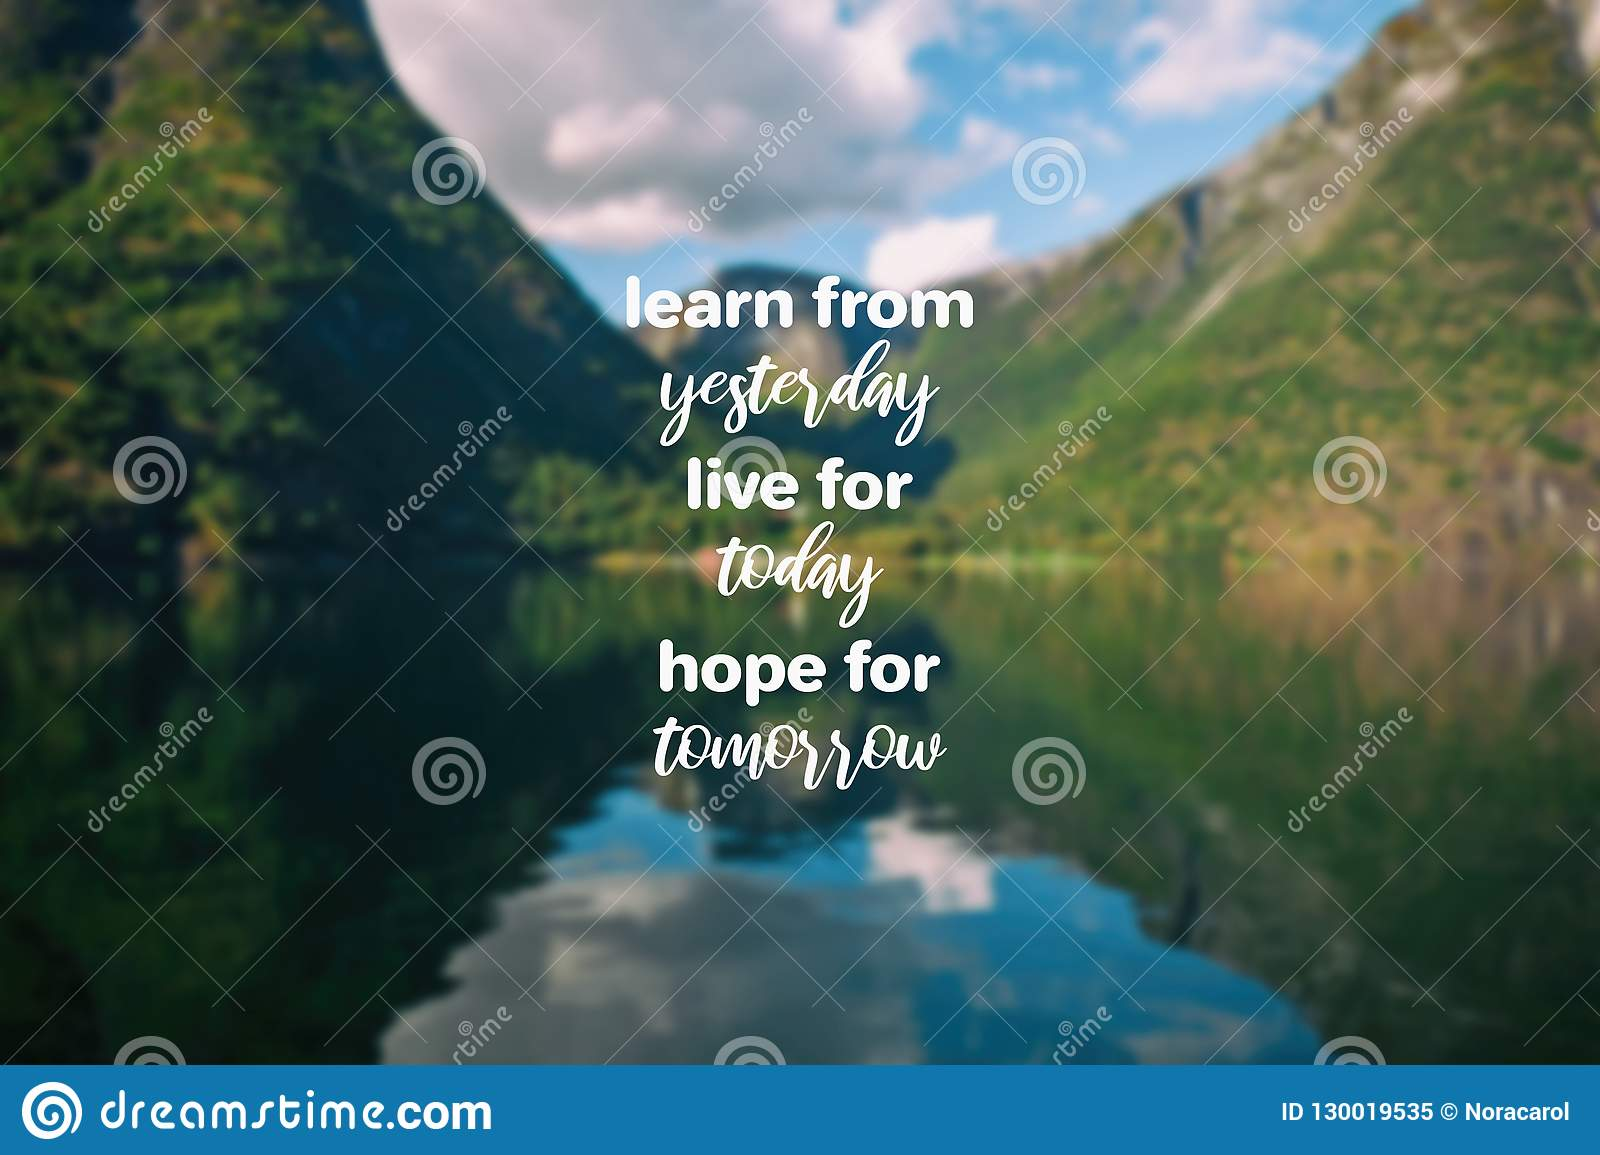 Learn From Yesterday Live For Today Hope For Tomorrow Stock Image